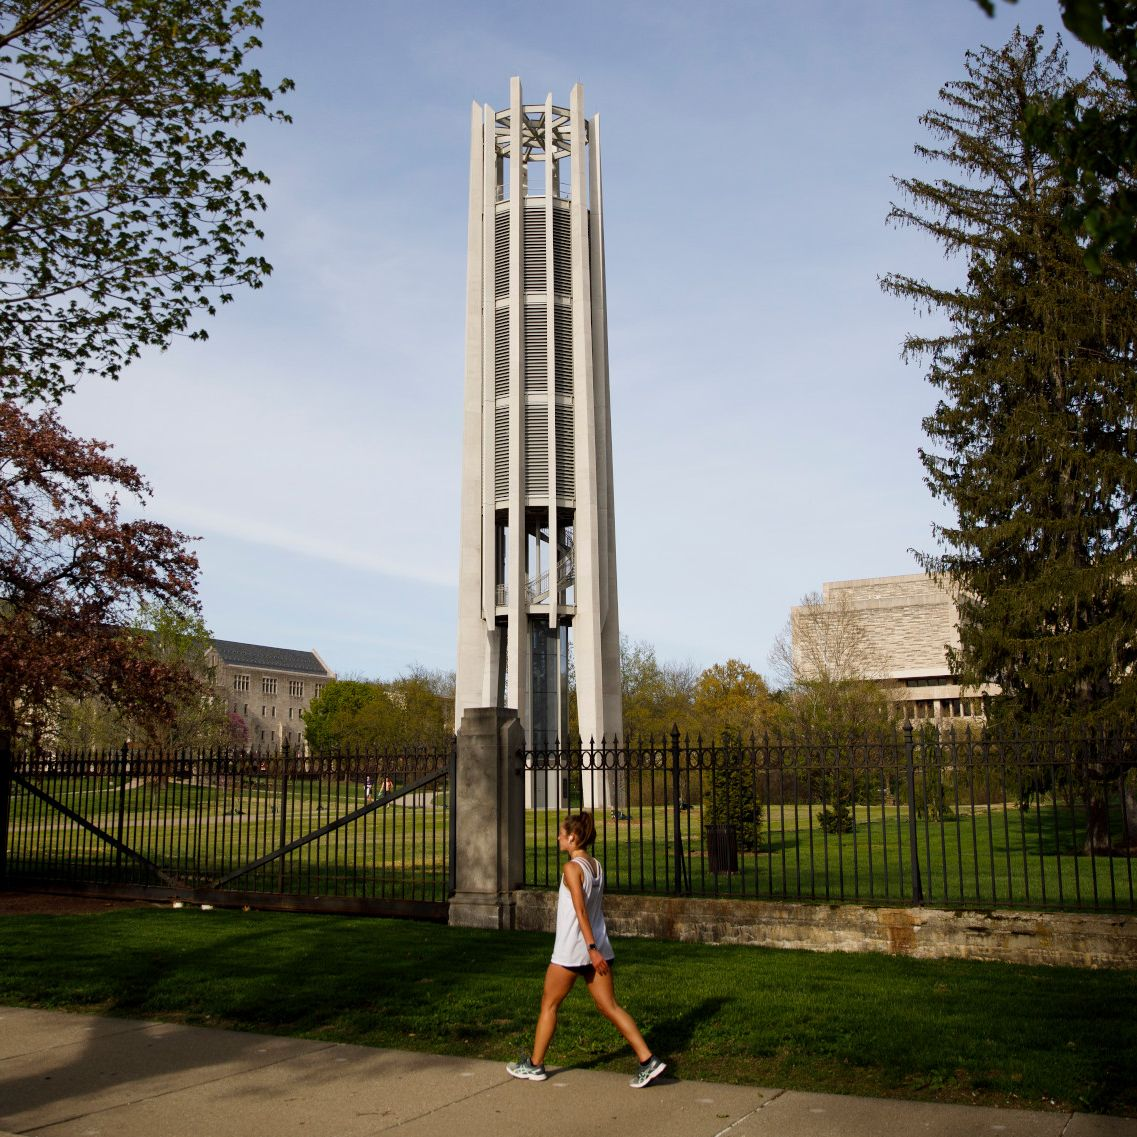 A woman walks along a path near the Metz Grand Carillon.